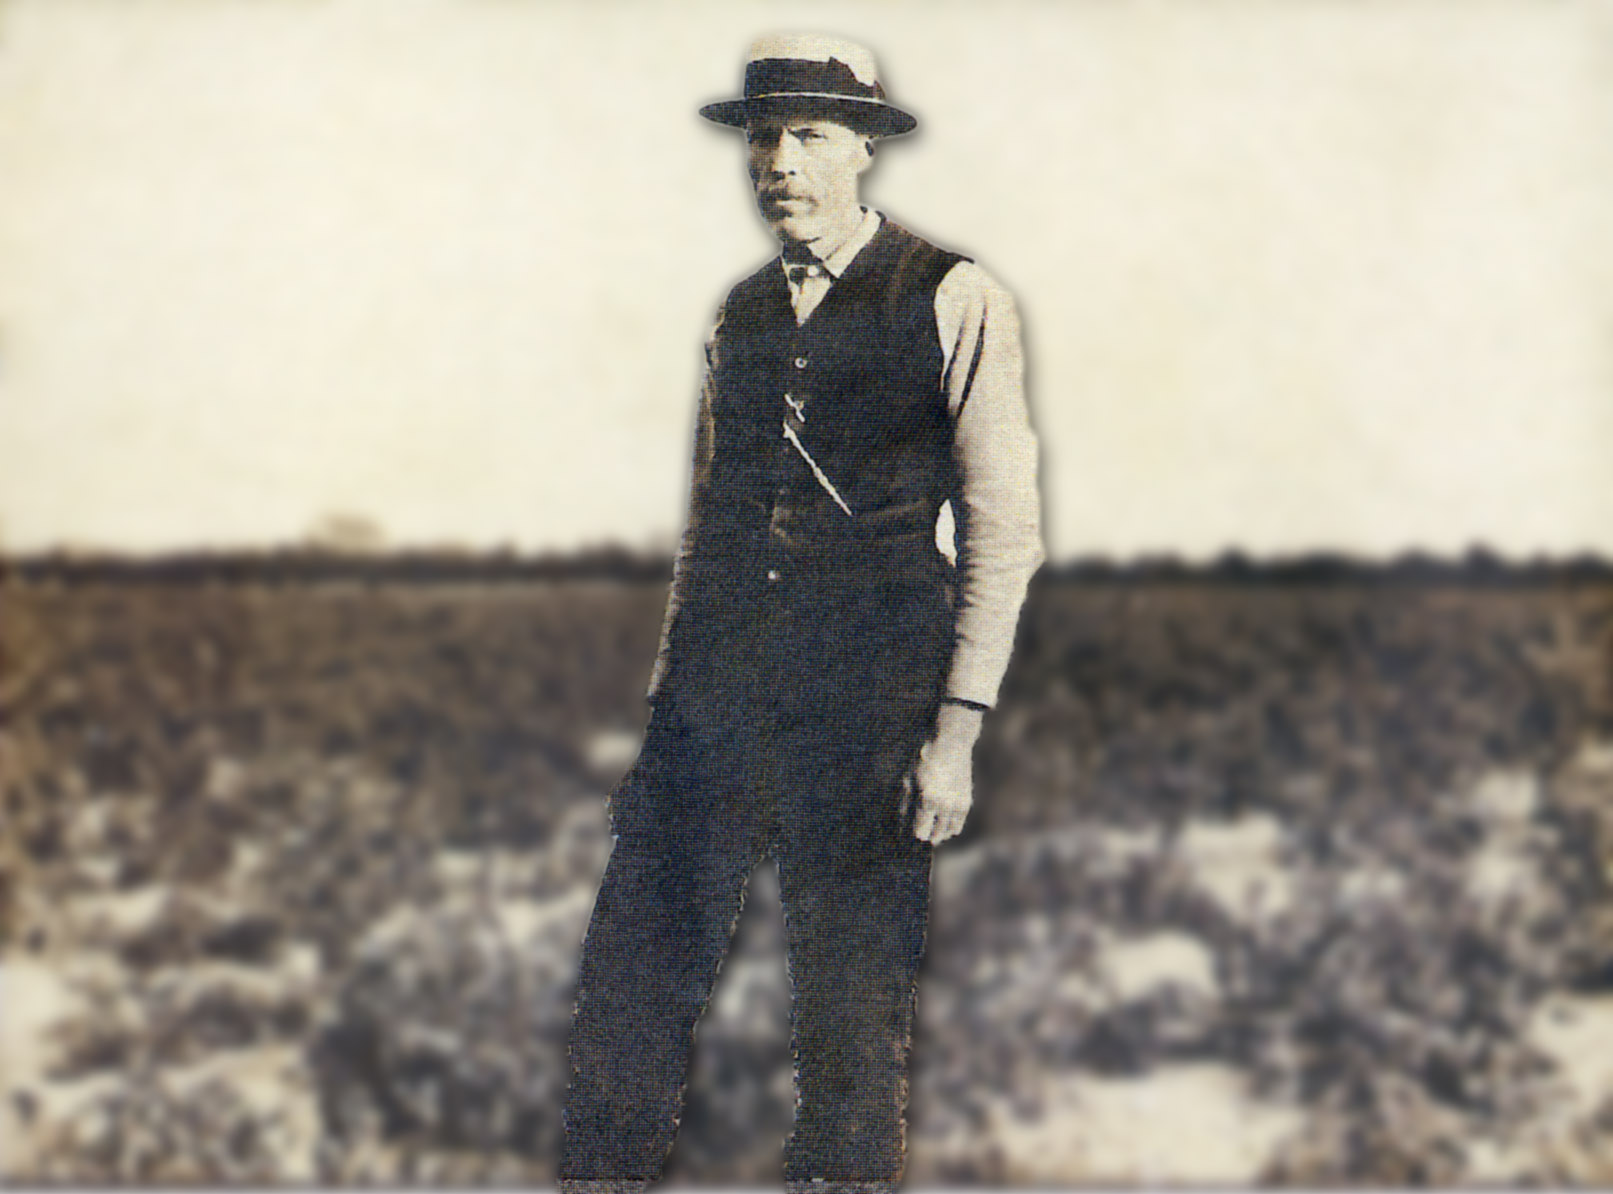 Historical photo of man standing in a field